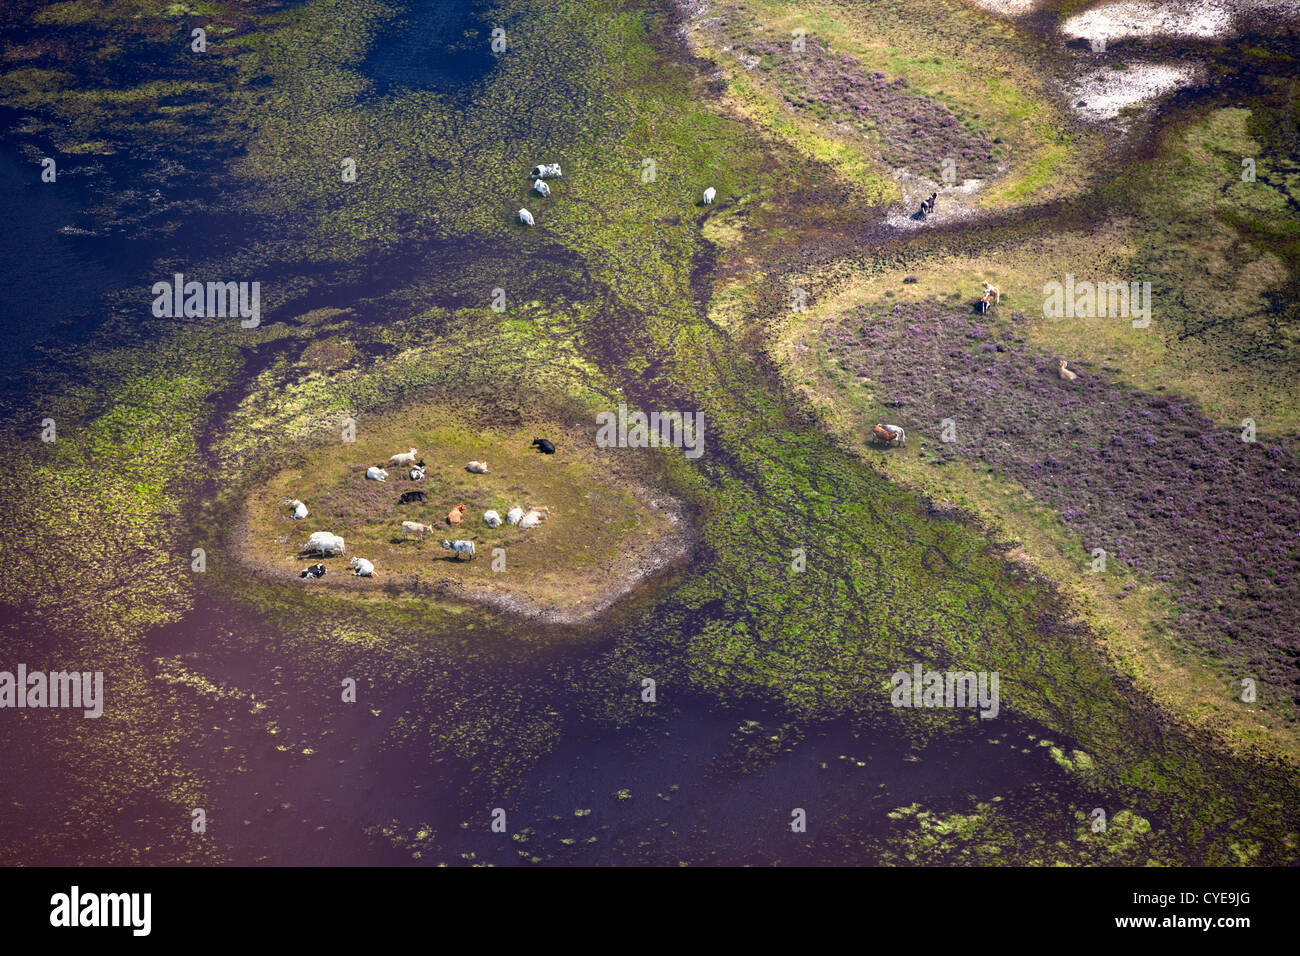 The Netherlands, Dwingeloo, Heath land called: Dwingelderveld. Cows ruminating on island in shallow  pool. Aerial. - Stock Image